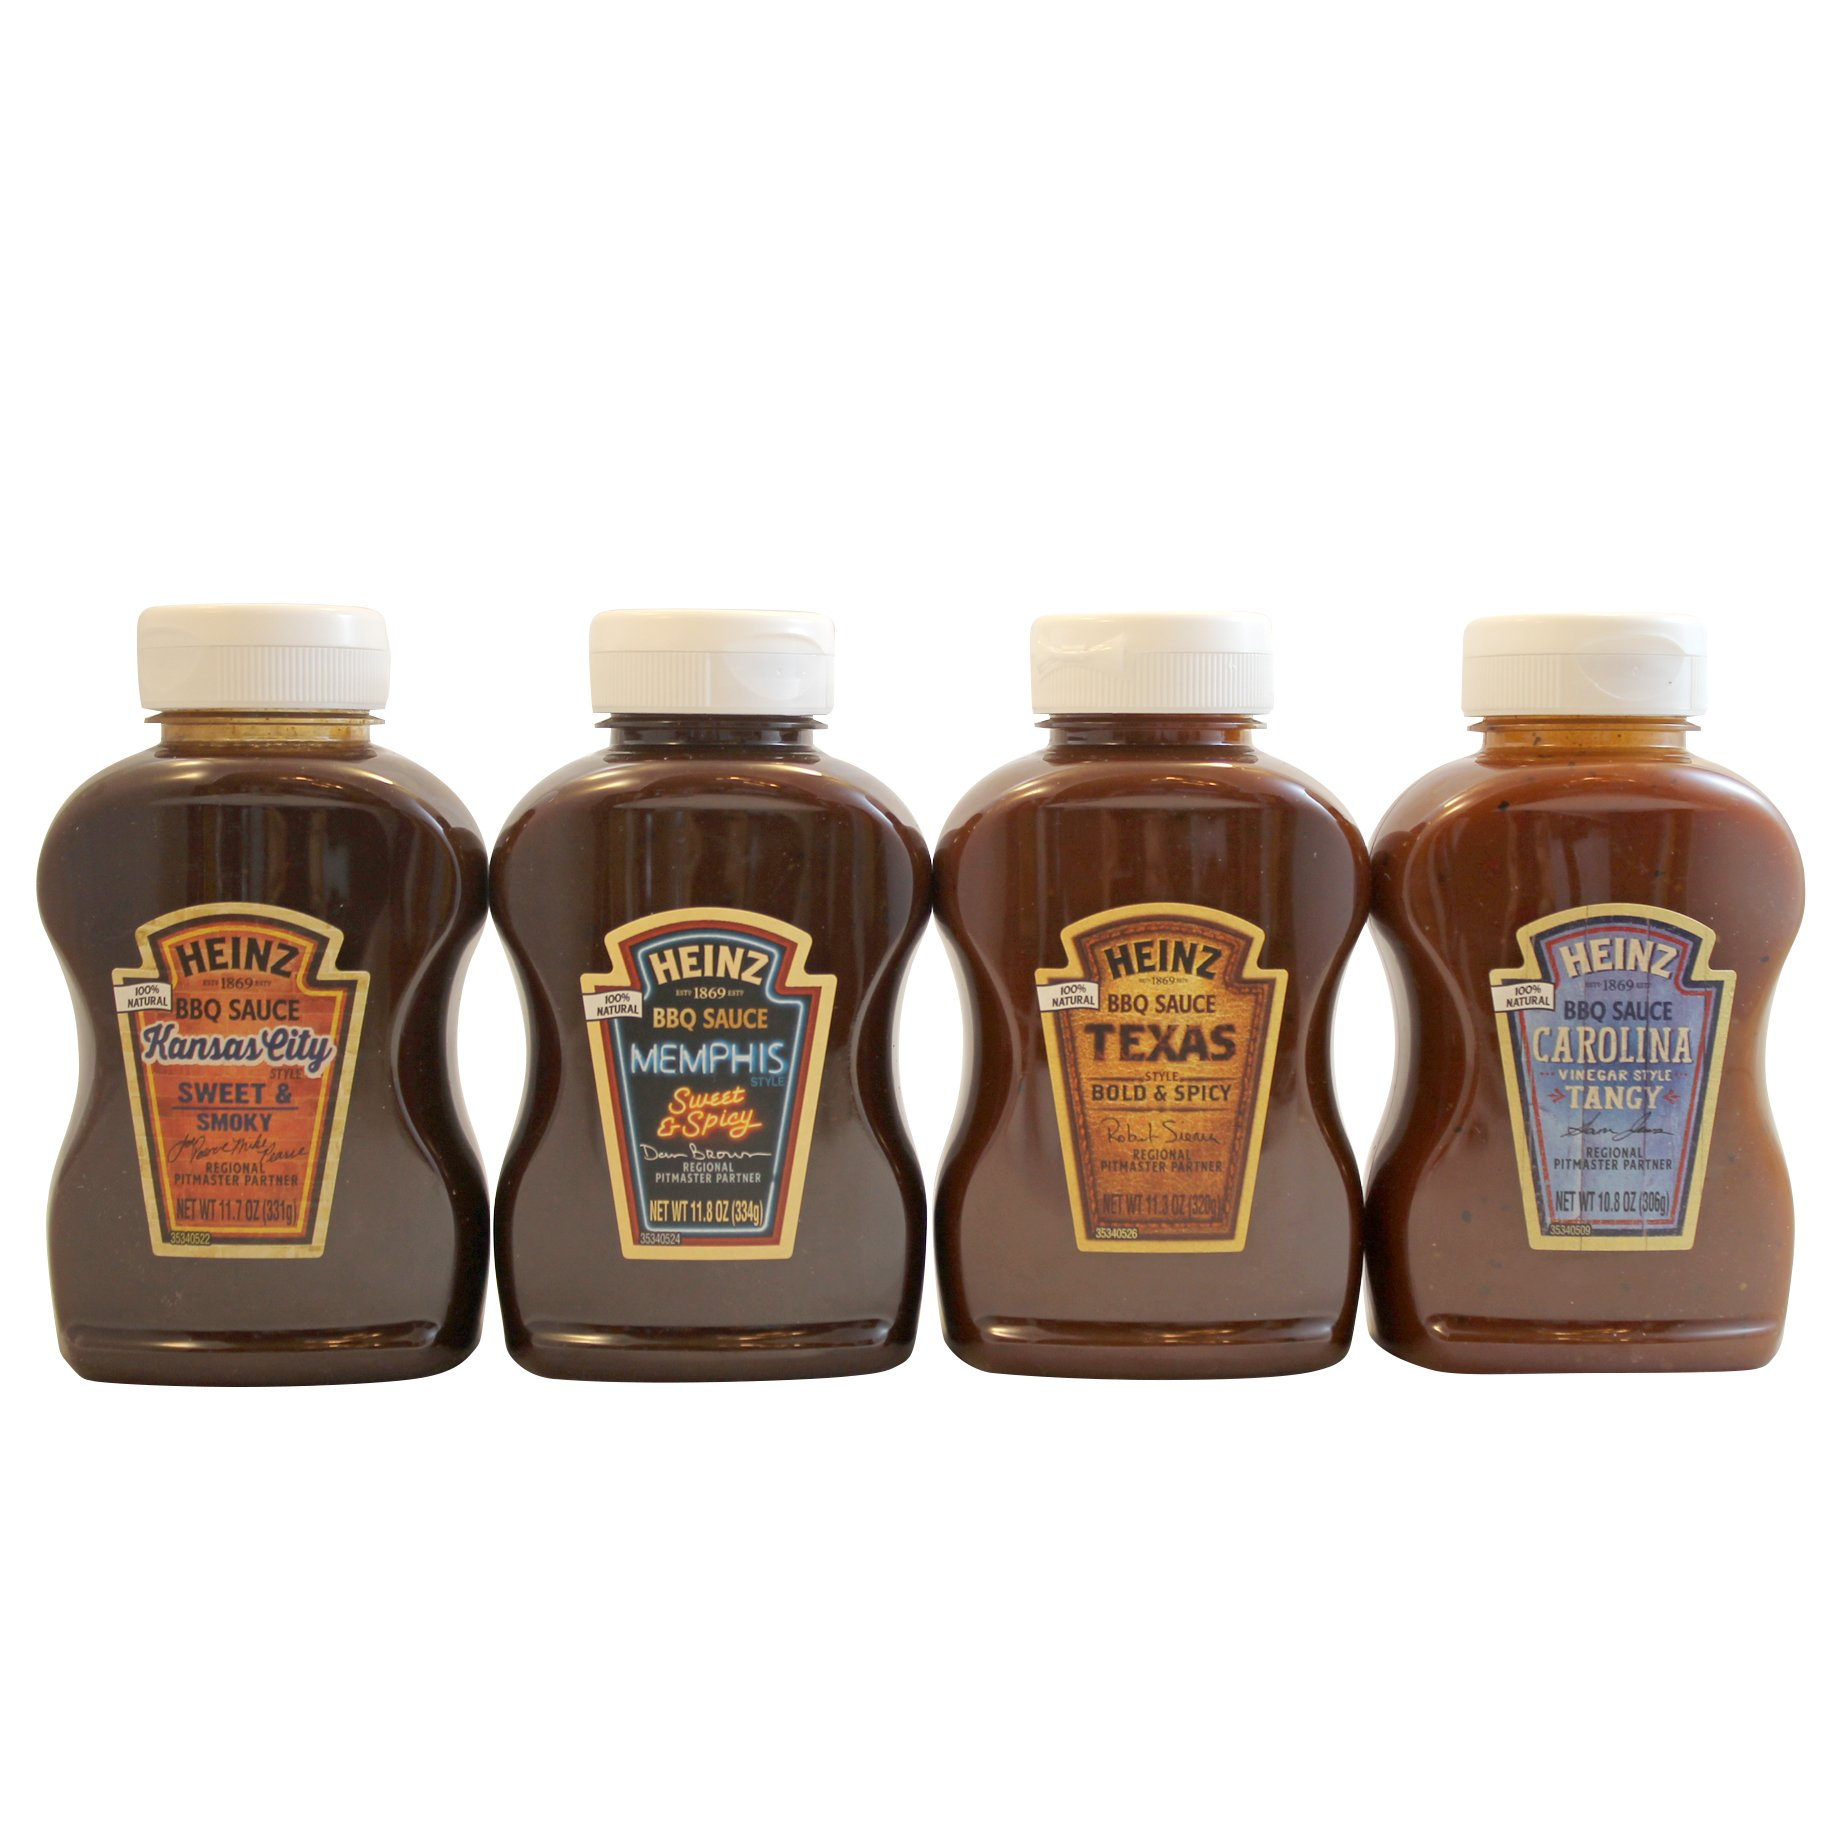 Heinz BBQ Suace Sampler - Variety Pack of Gourmet 100% Natural Barbecue Sauce Flavors